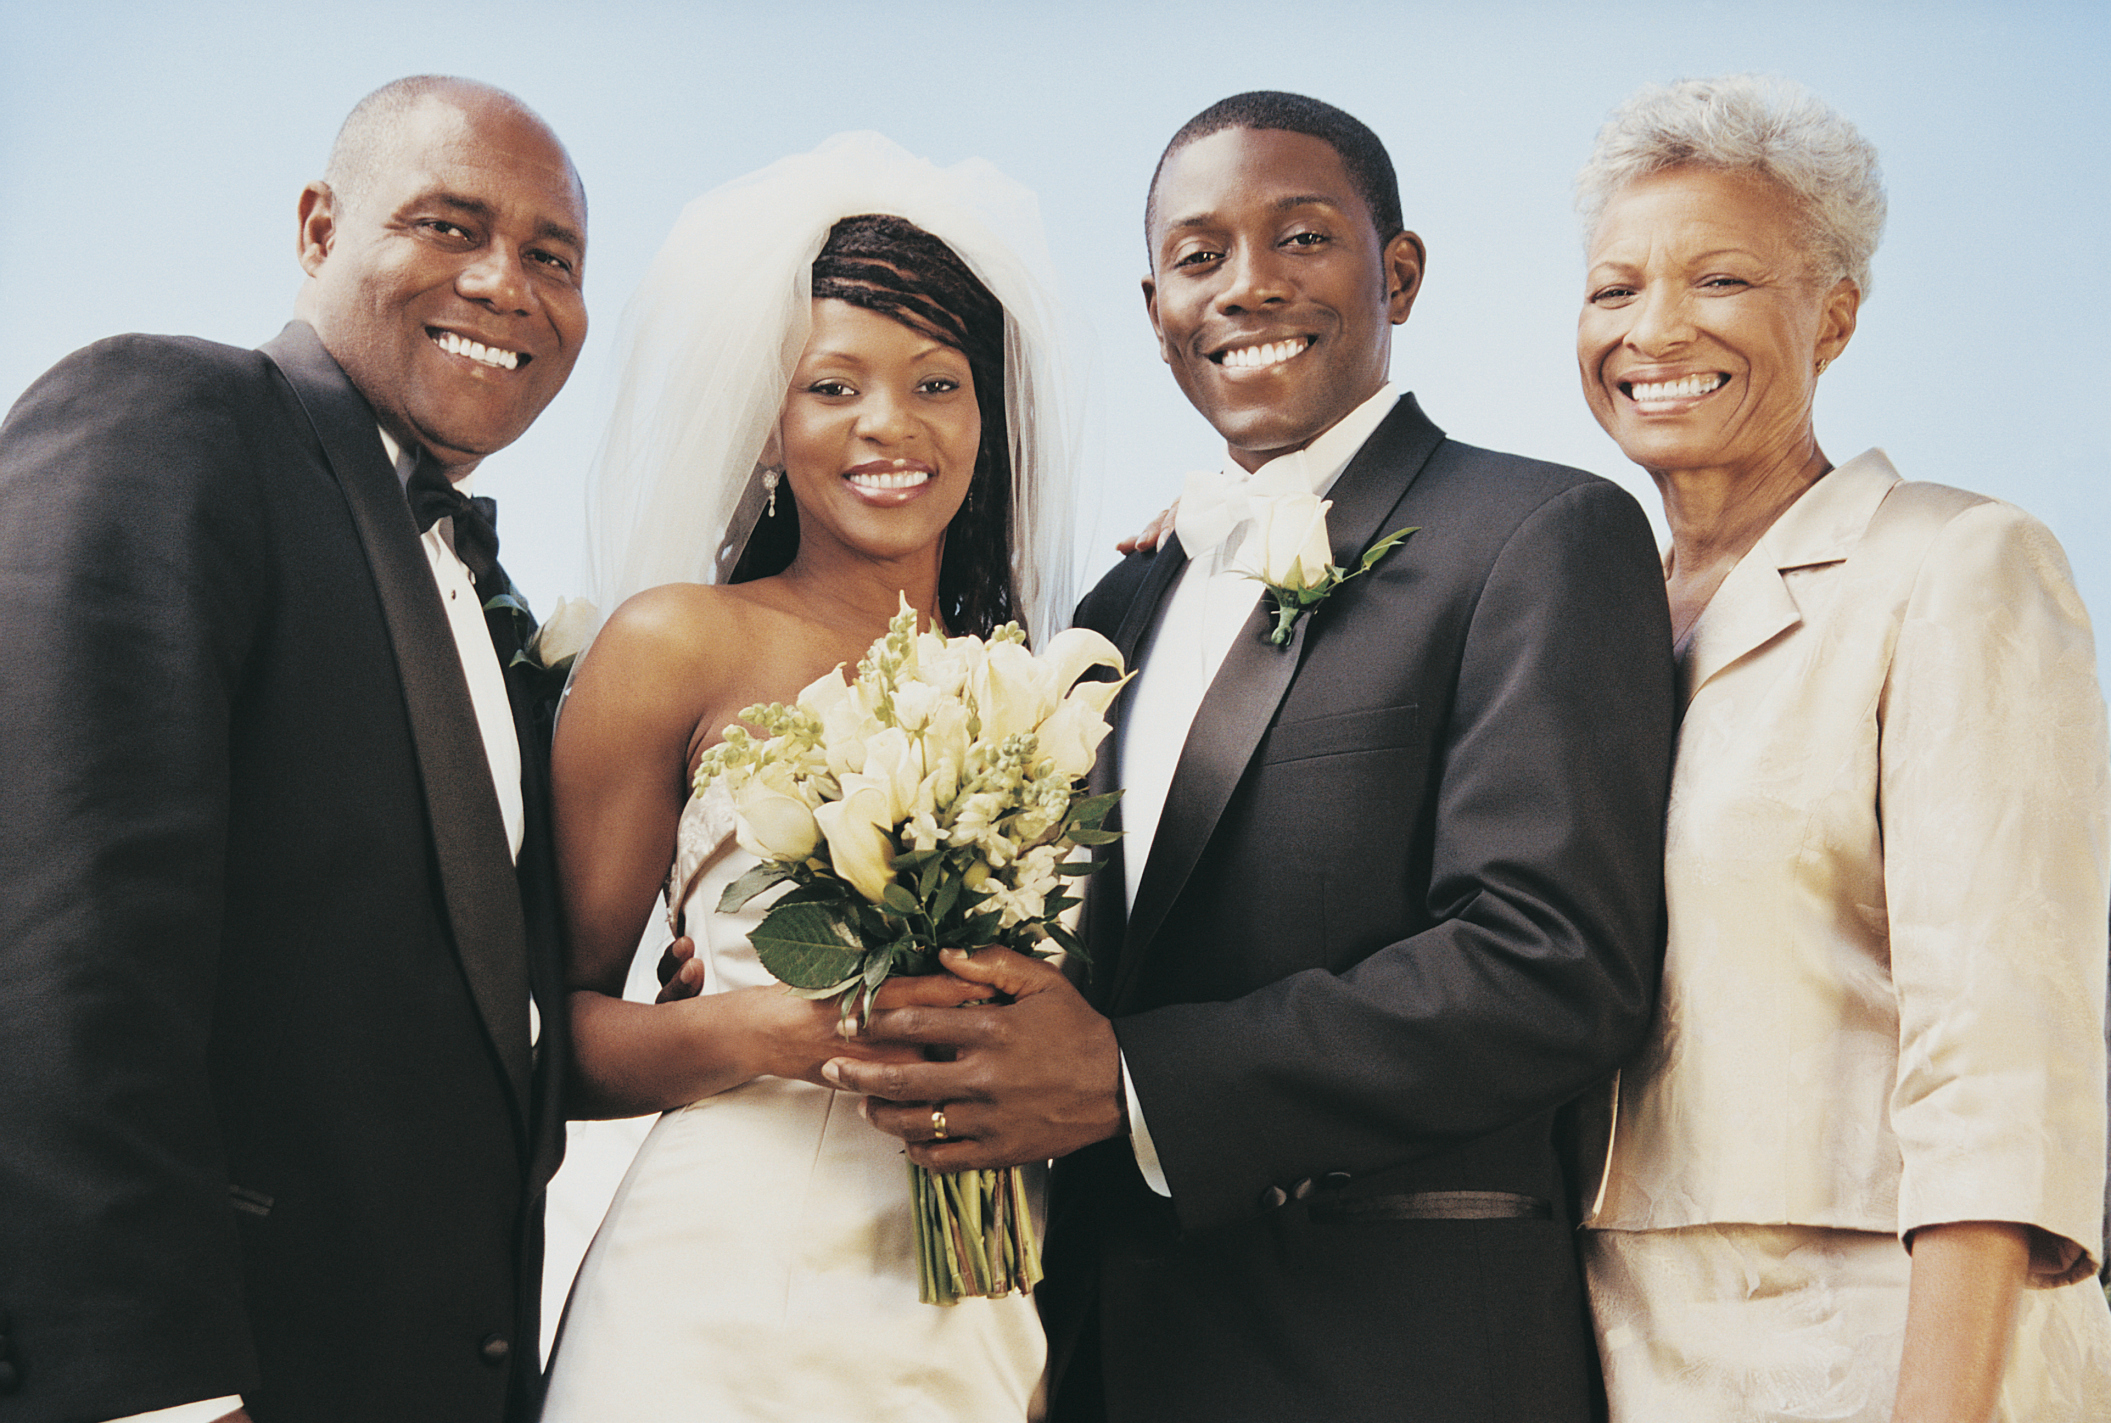 Wedding Etiquette For Groom S Parents: What Is The Proper Etiquette For Parents Of Bride And